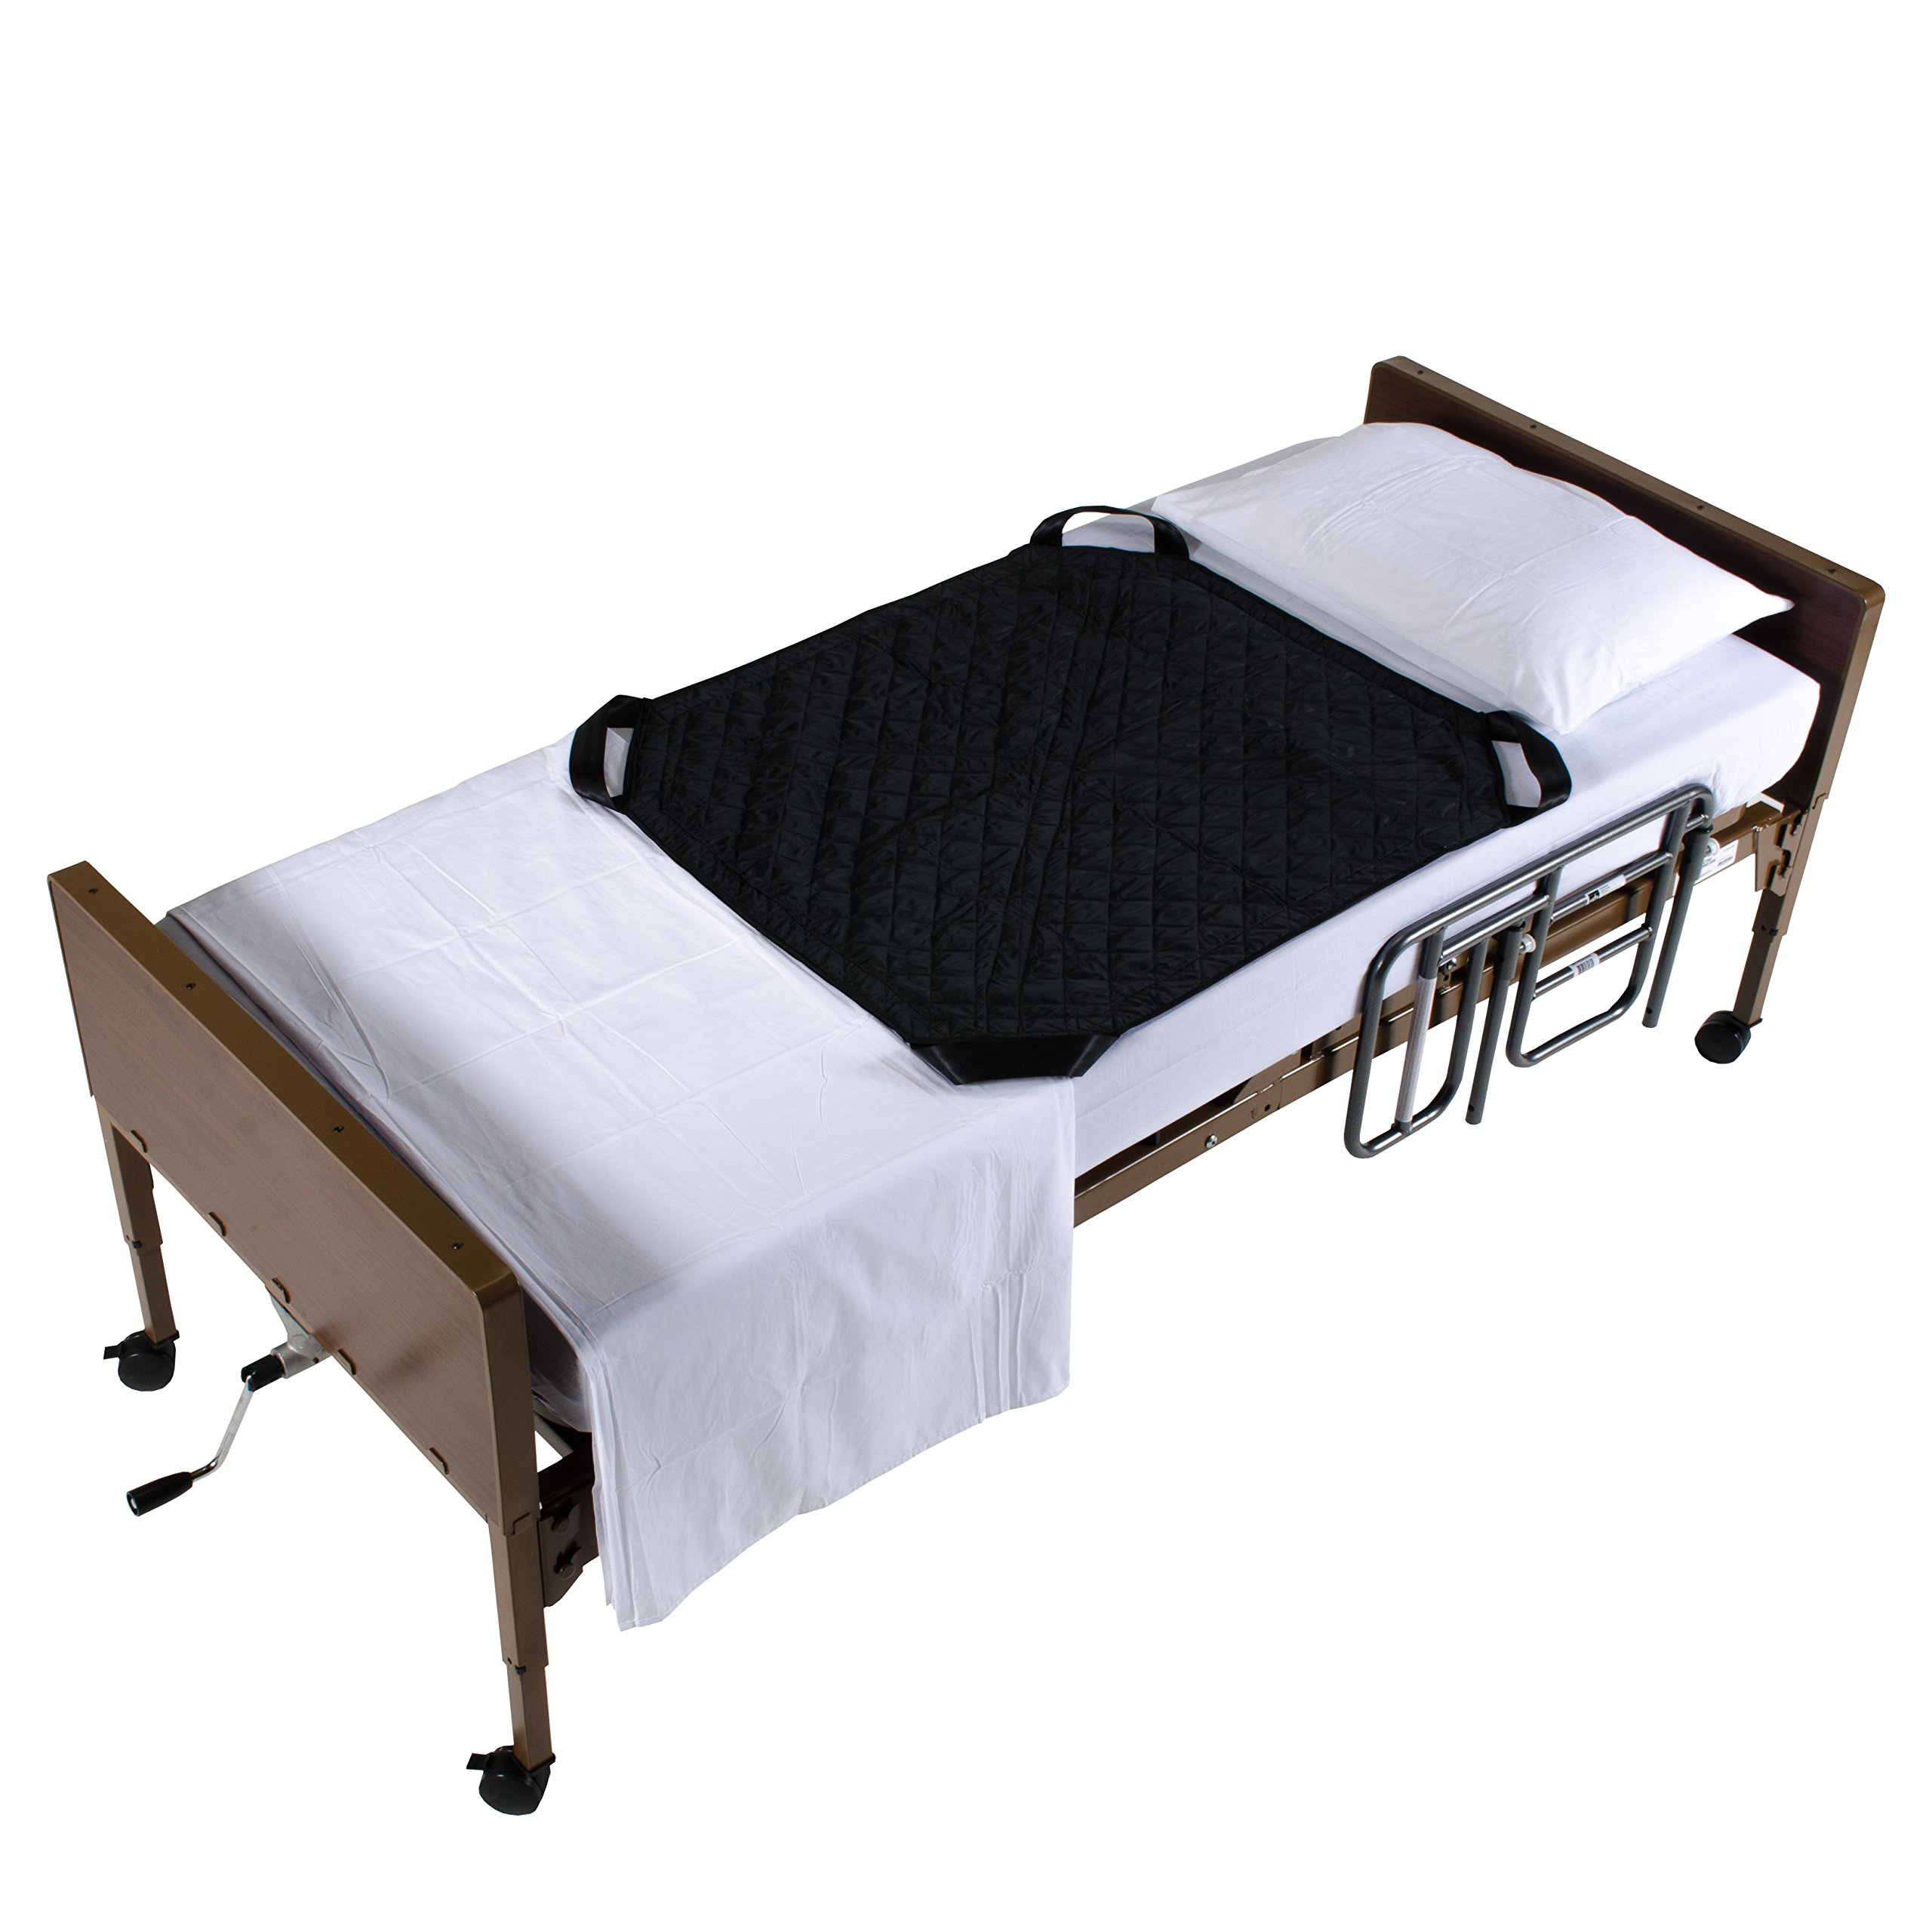 4 Handled Patient Turner & Positioning Aid for Patient Transfers, Turning, and Repositioning in Beds, Perfect For Hospitals and Home Care, to Assist Moving Elderly and Disabled Patients 400lb Capacity